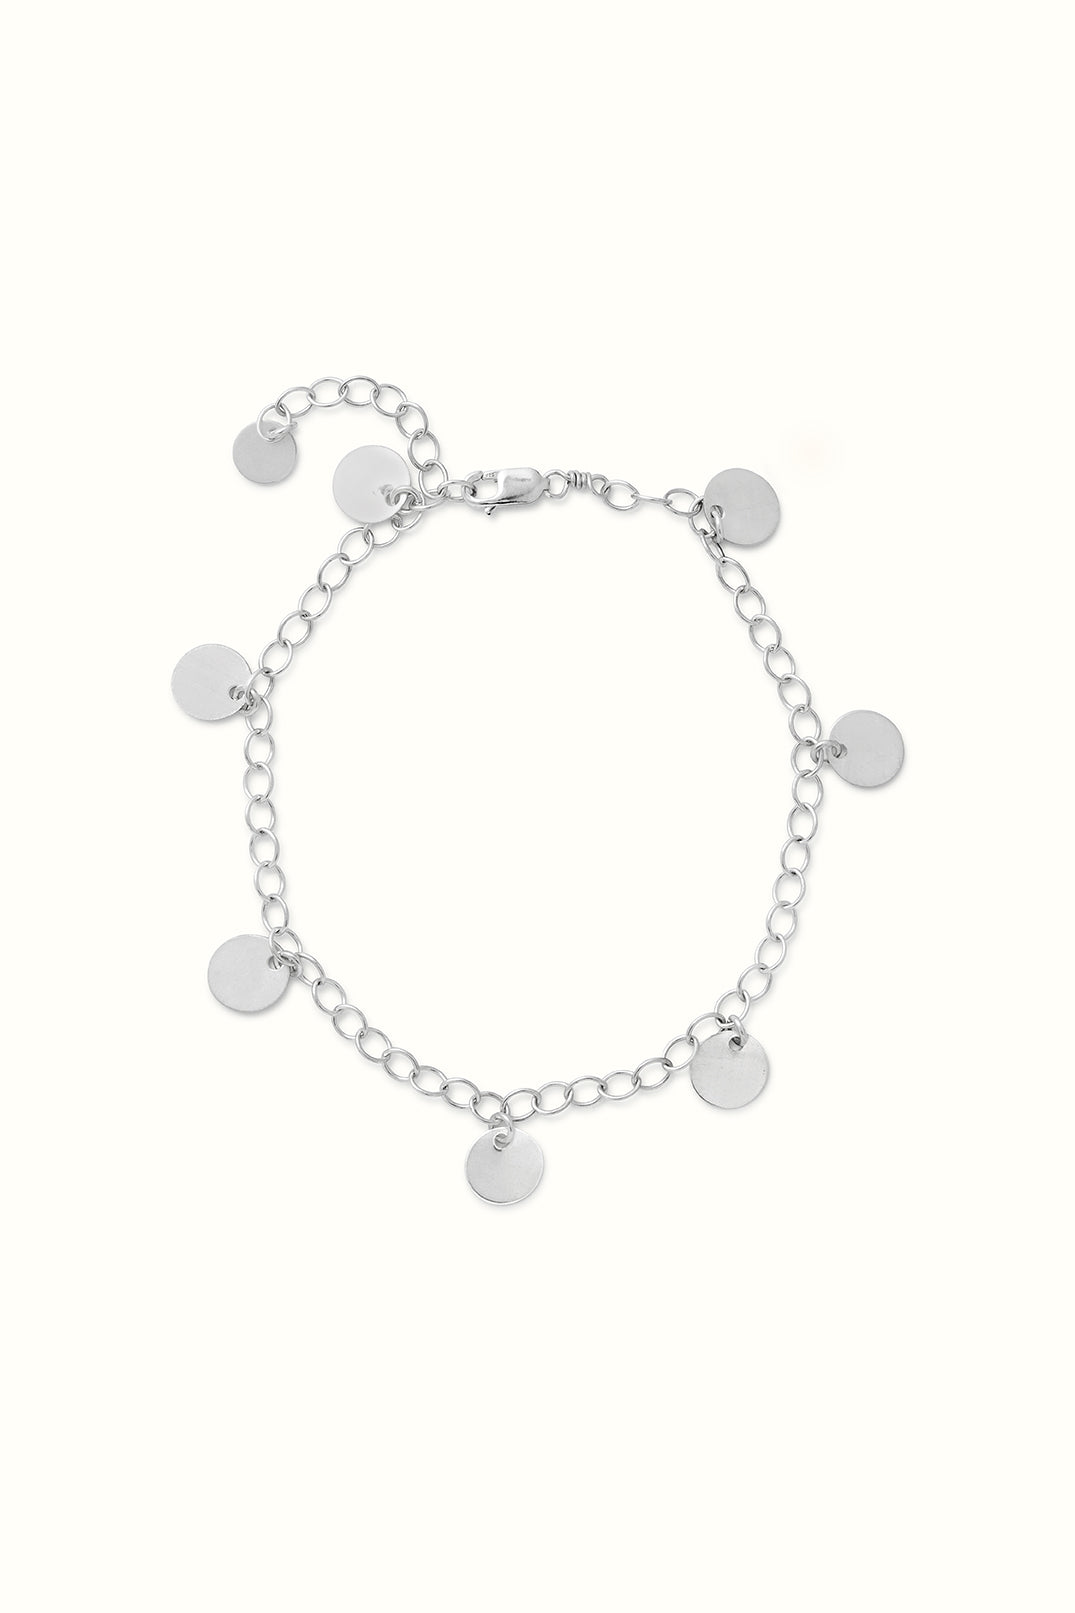 a sterling silver round charm bracelet lying on a white surface